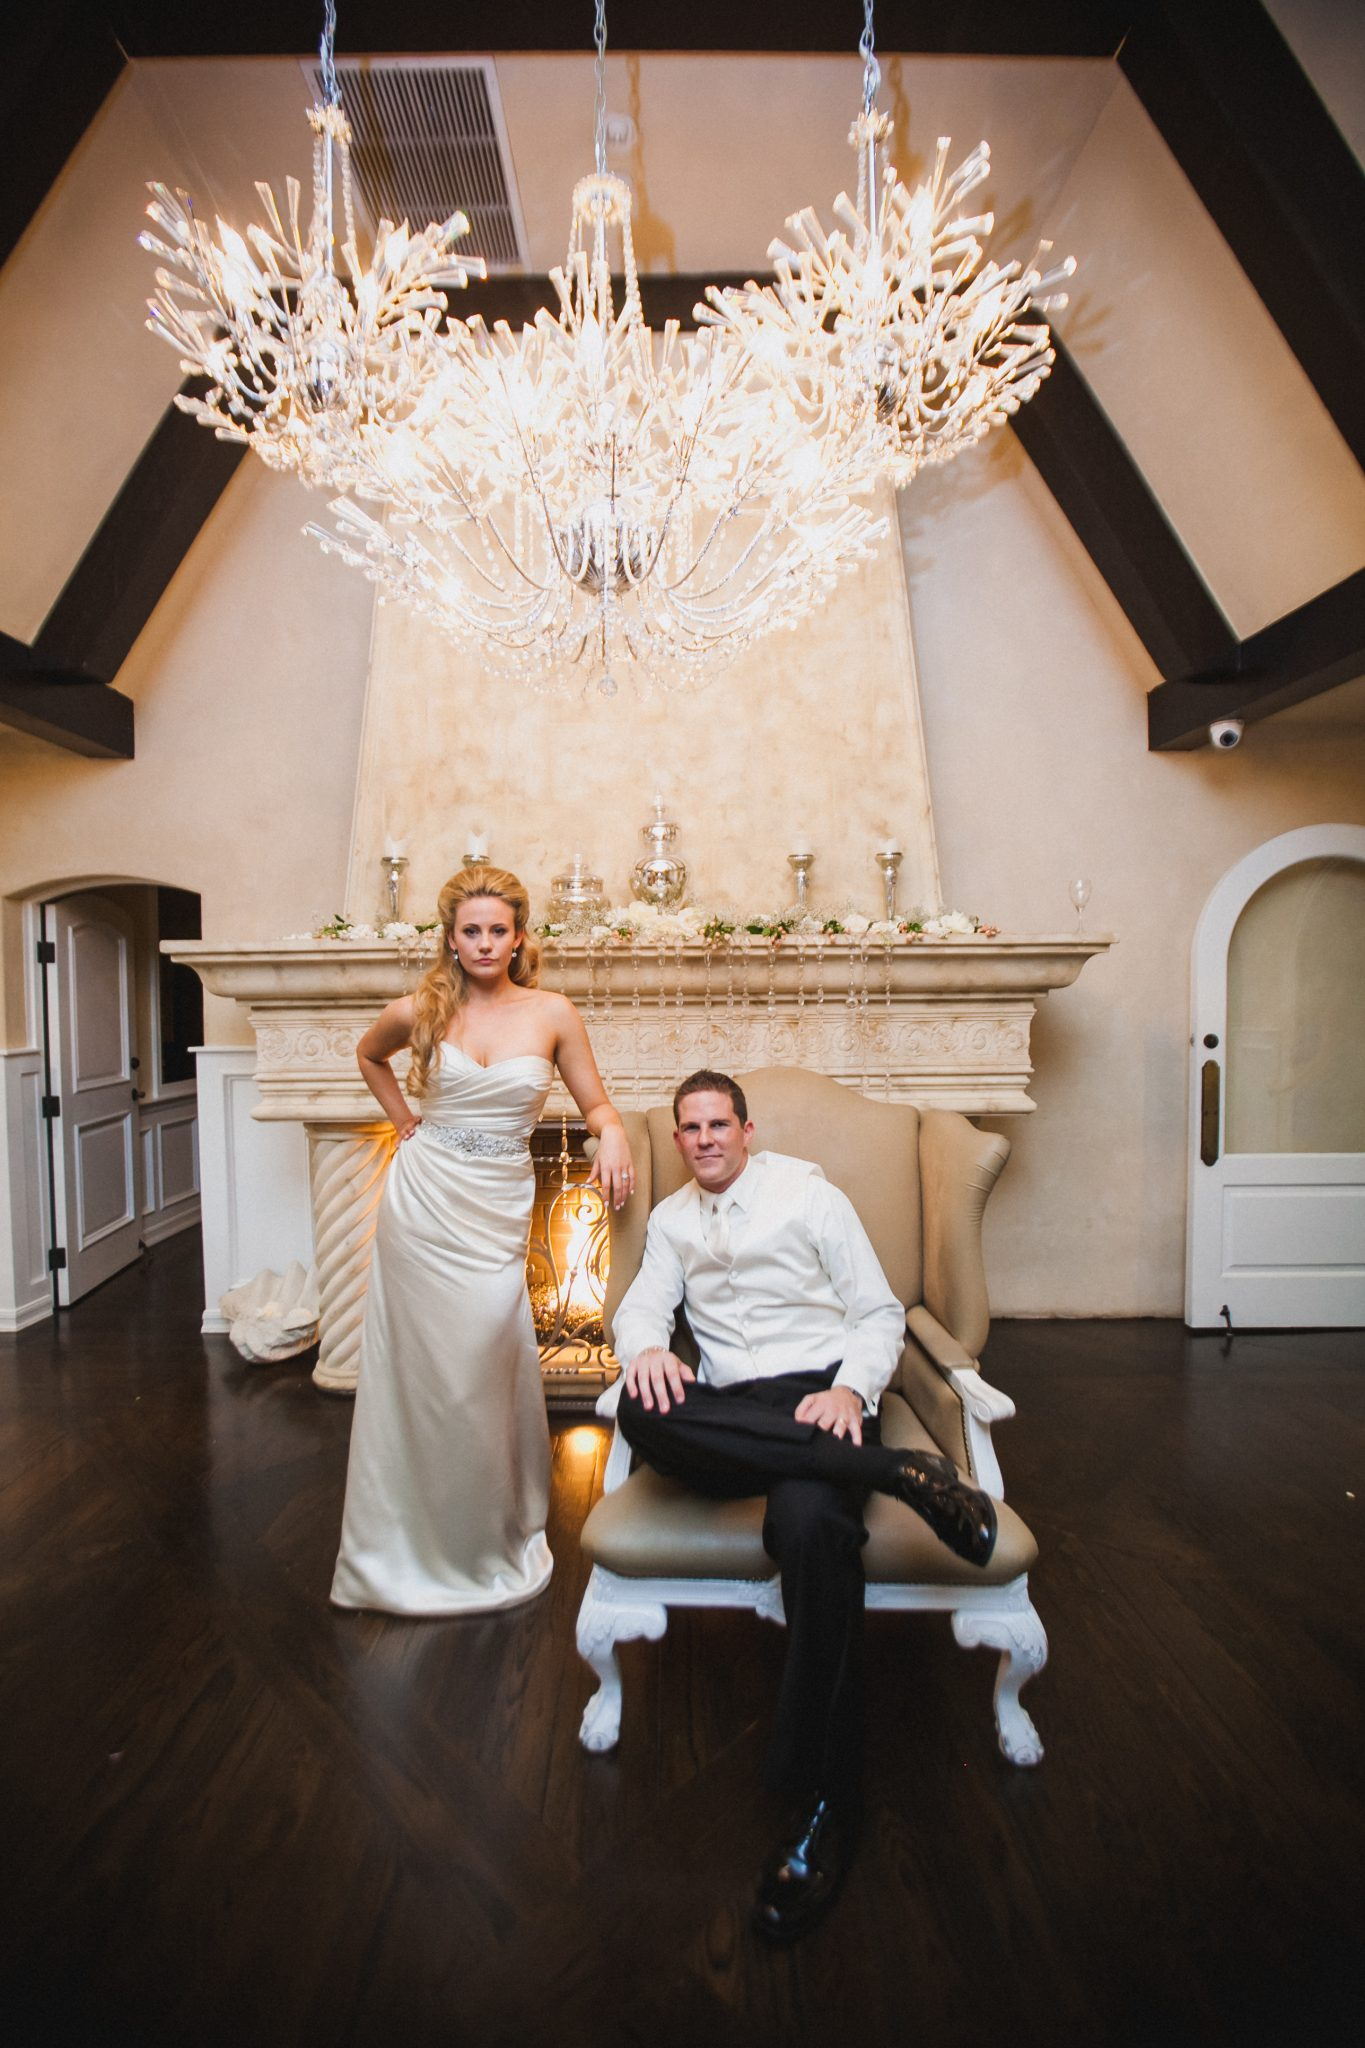 Indoor portrait of a couple under a chandelier